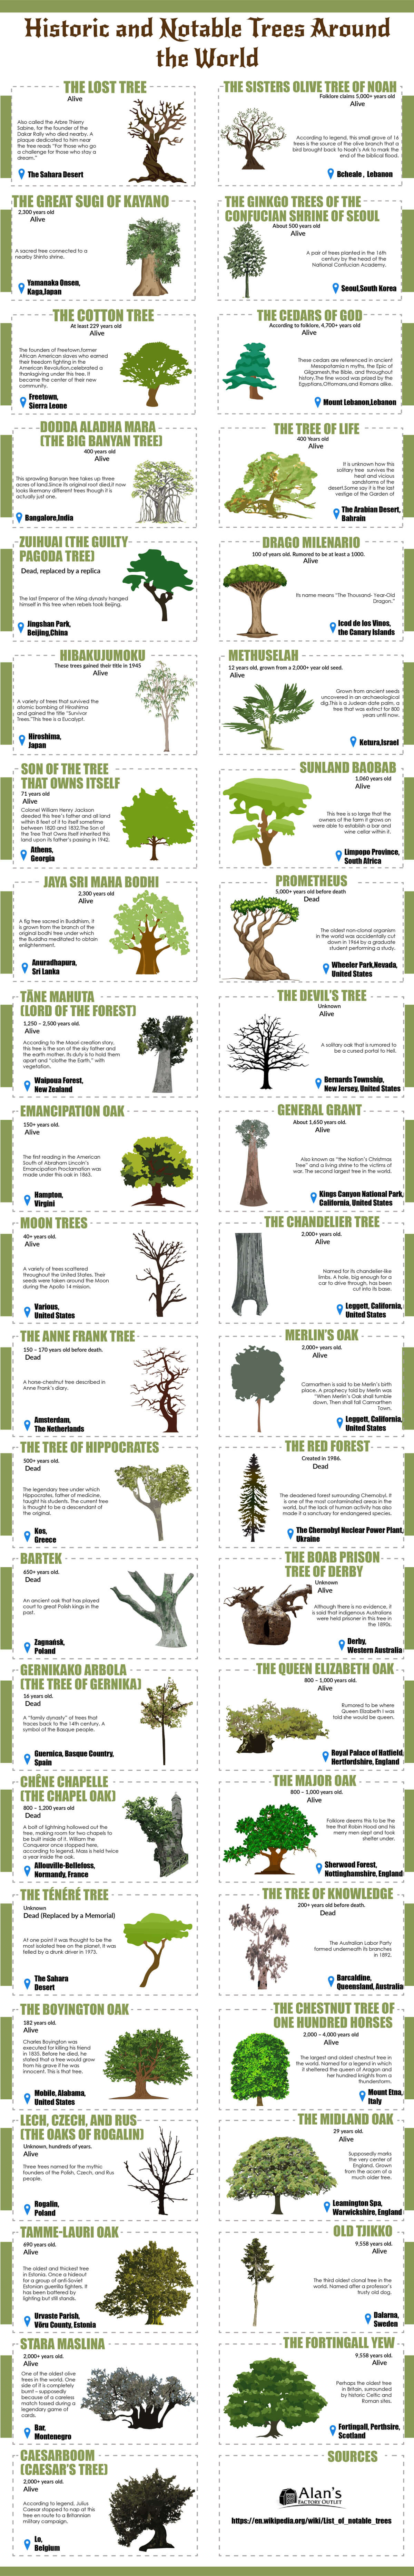 Historic and Notable Trees Around the World